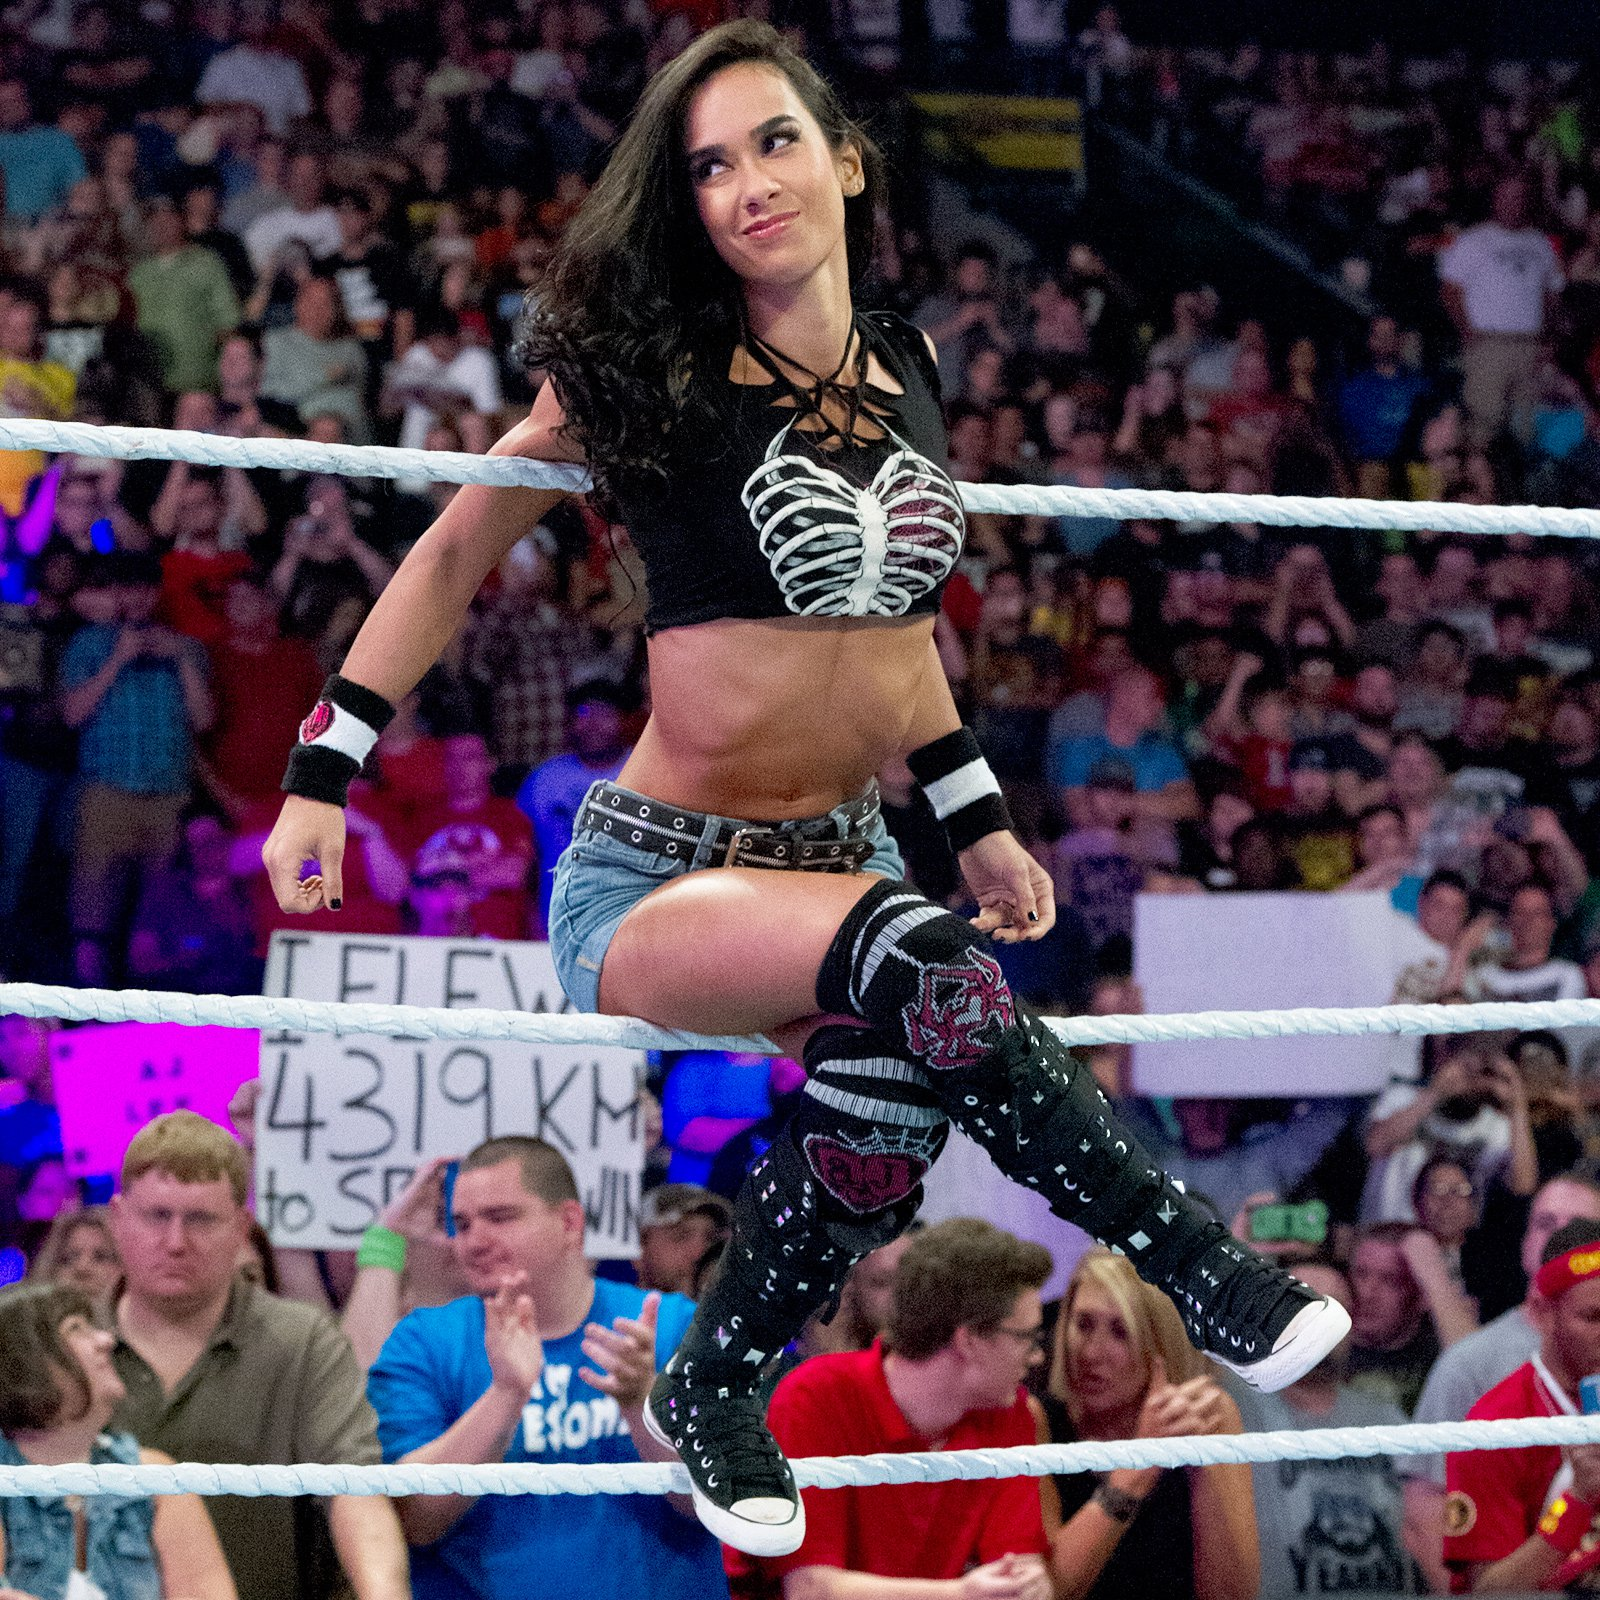 AJ Lee's Black Widow